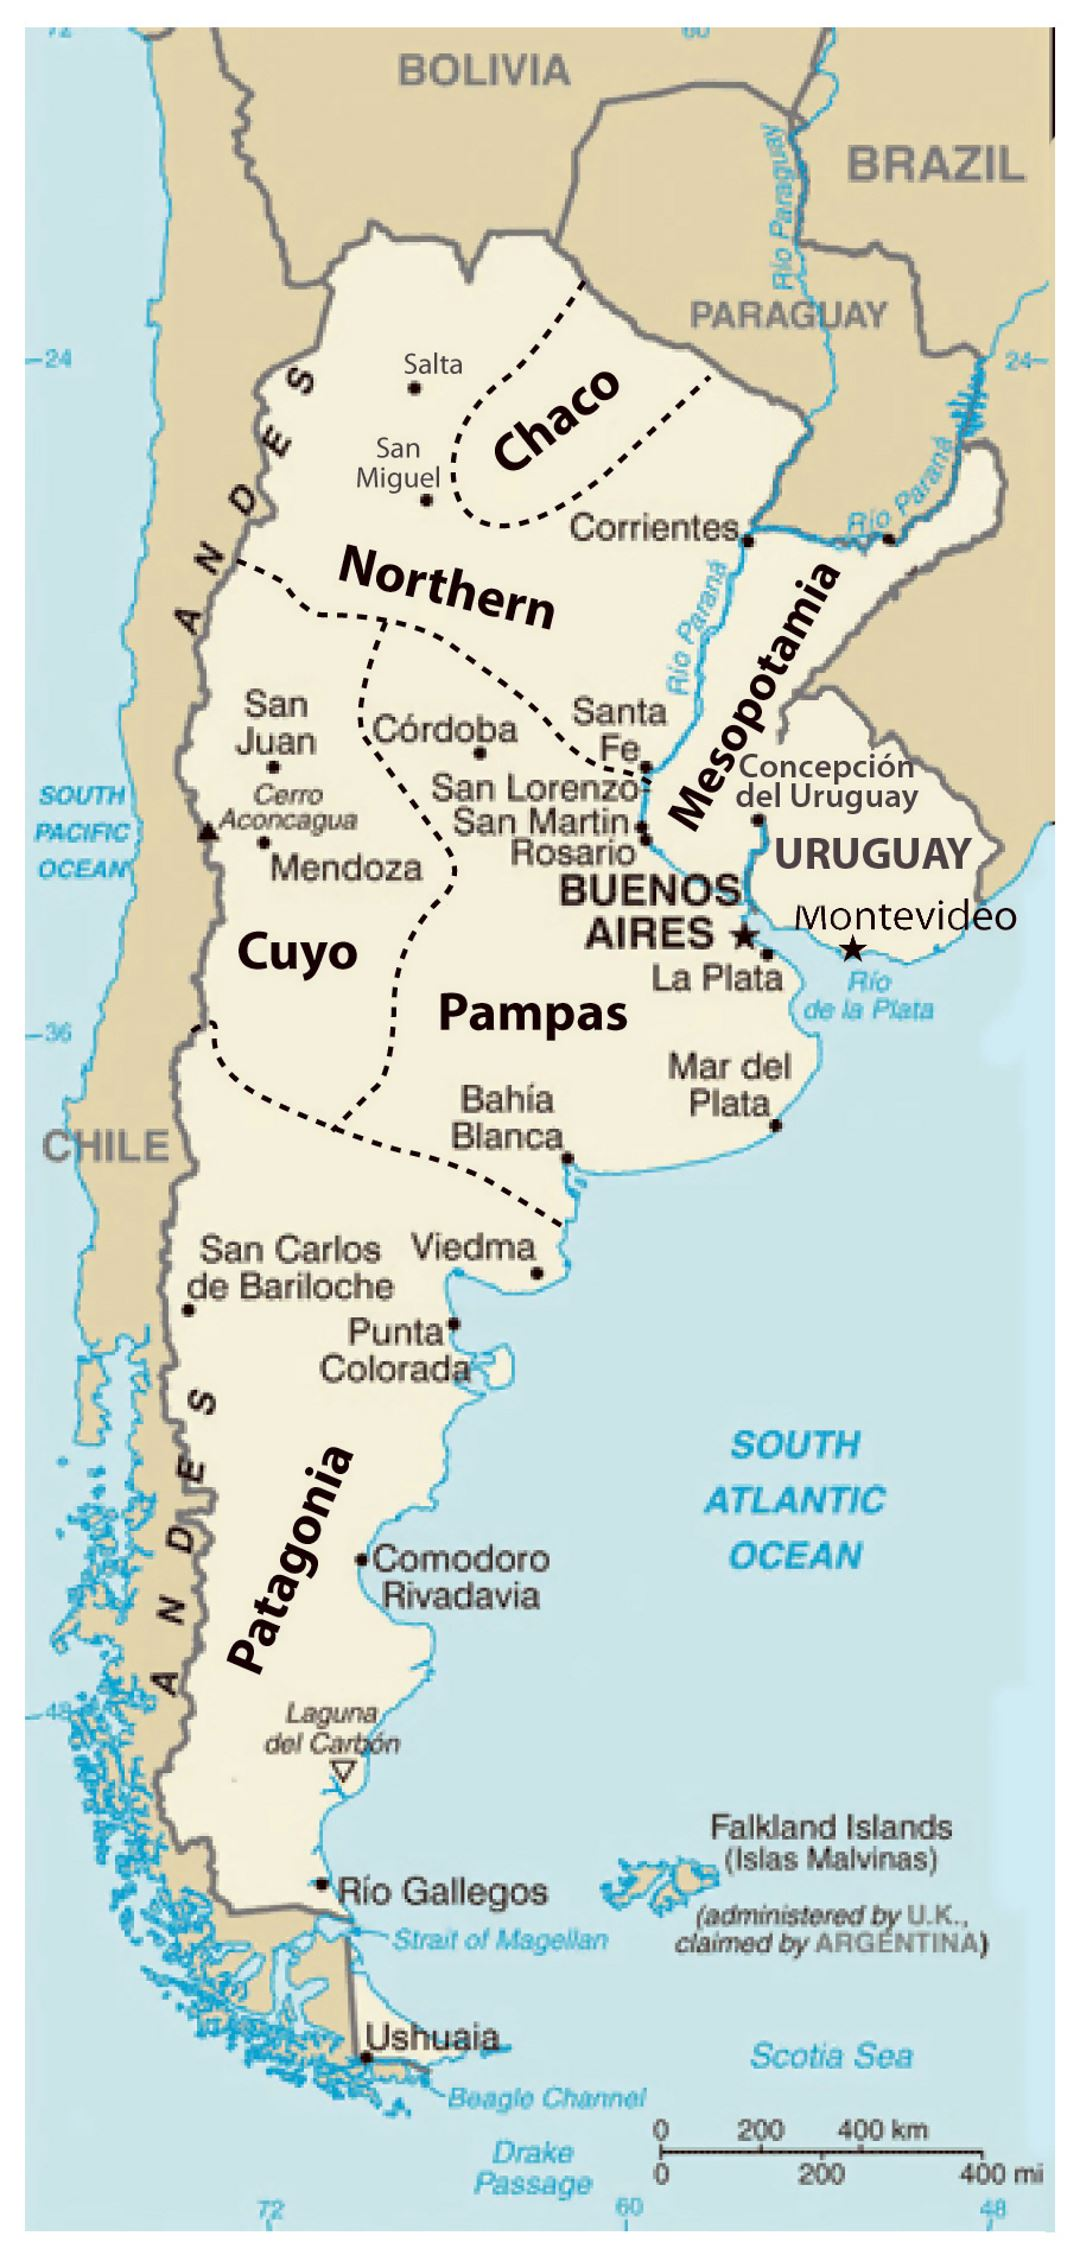 Detailed Regions Map Of Argentina Argentina South America - Argentina map detailed